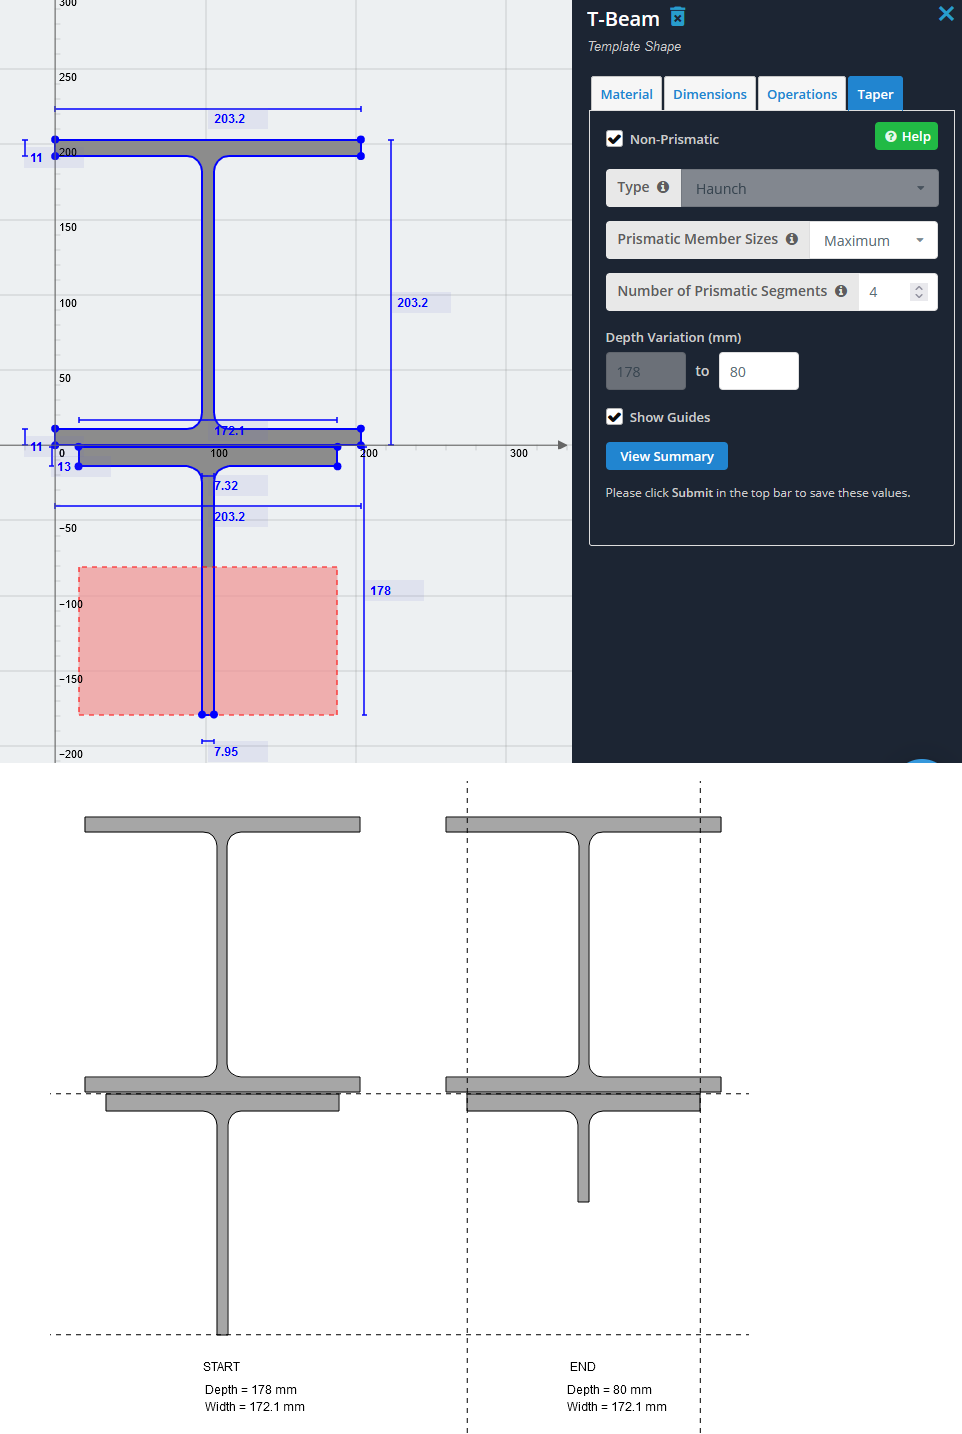 how to model a haunch in structural engineering software